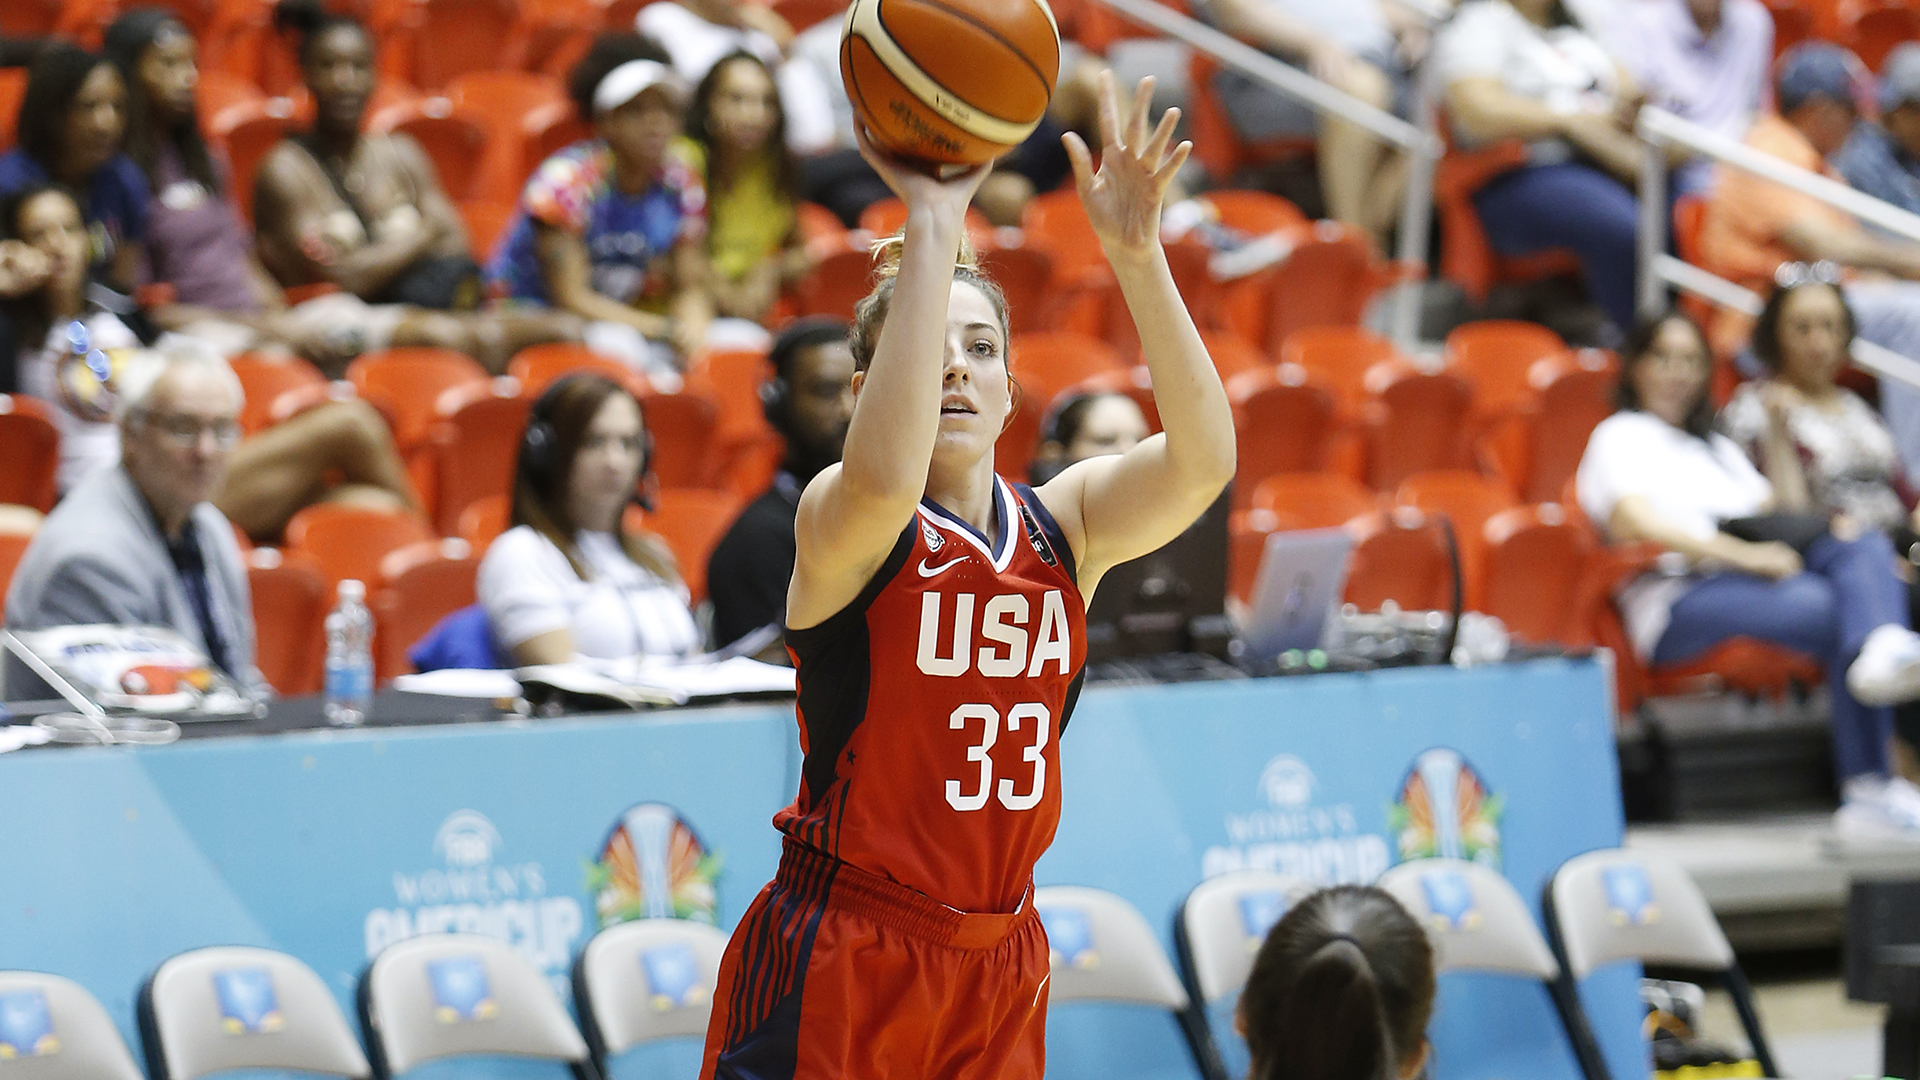 Katie Lou Samuelson, Ariel Atkins and Tiffany Mitchell added to rosters for upcoming USA Women's National Team competitions